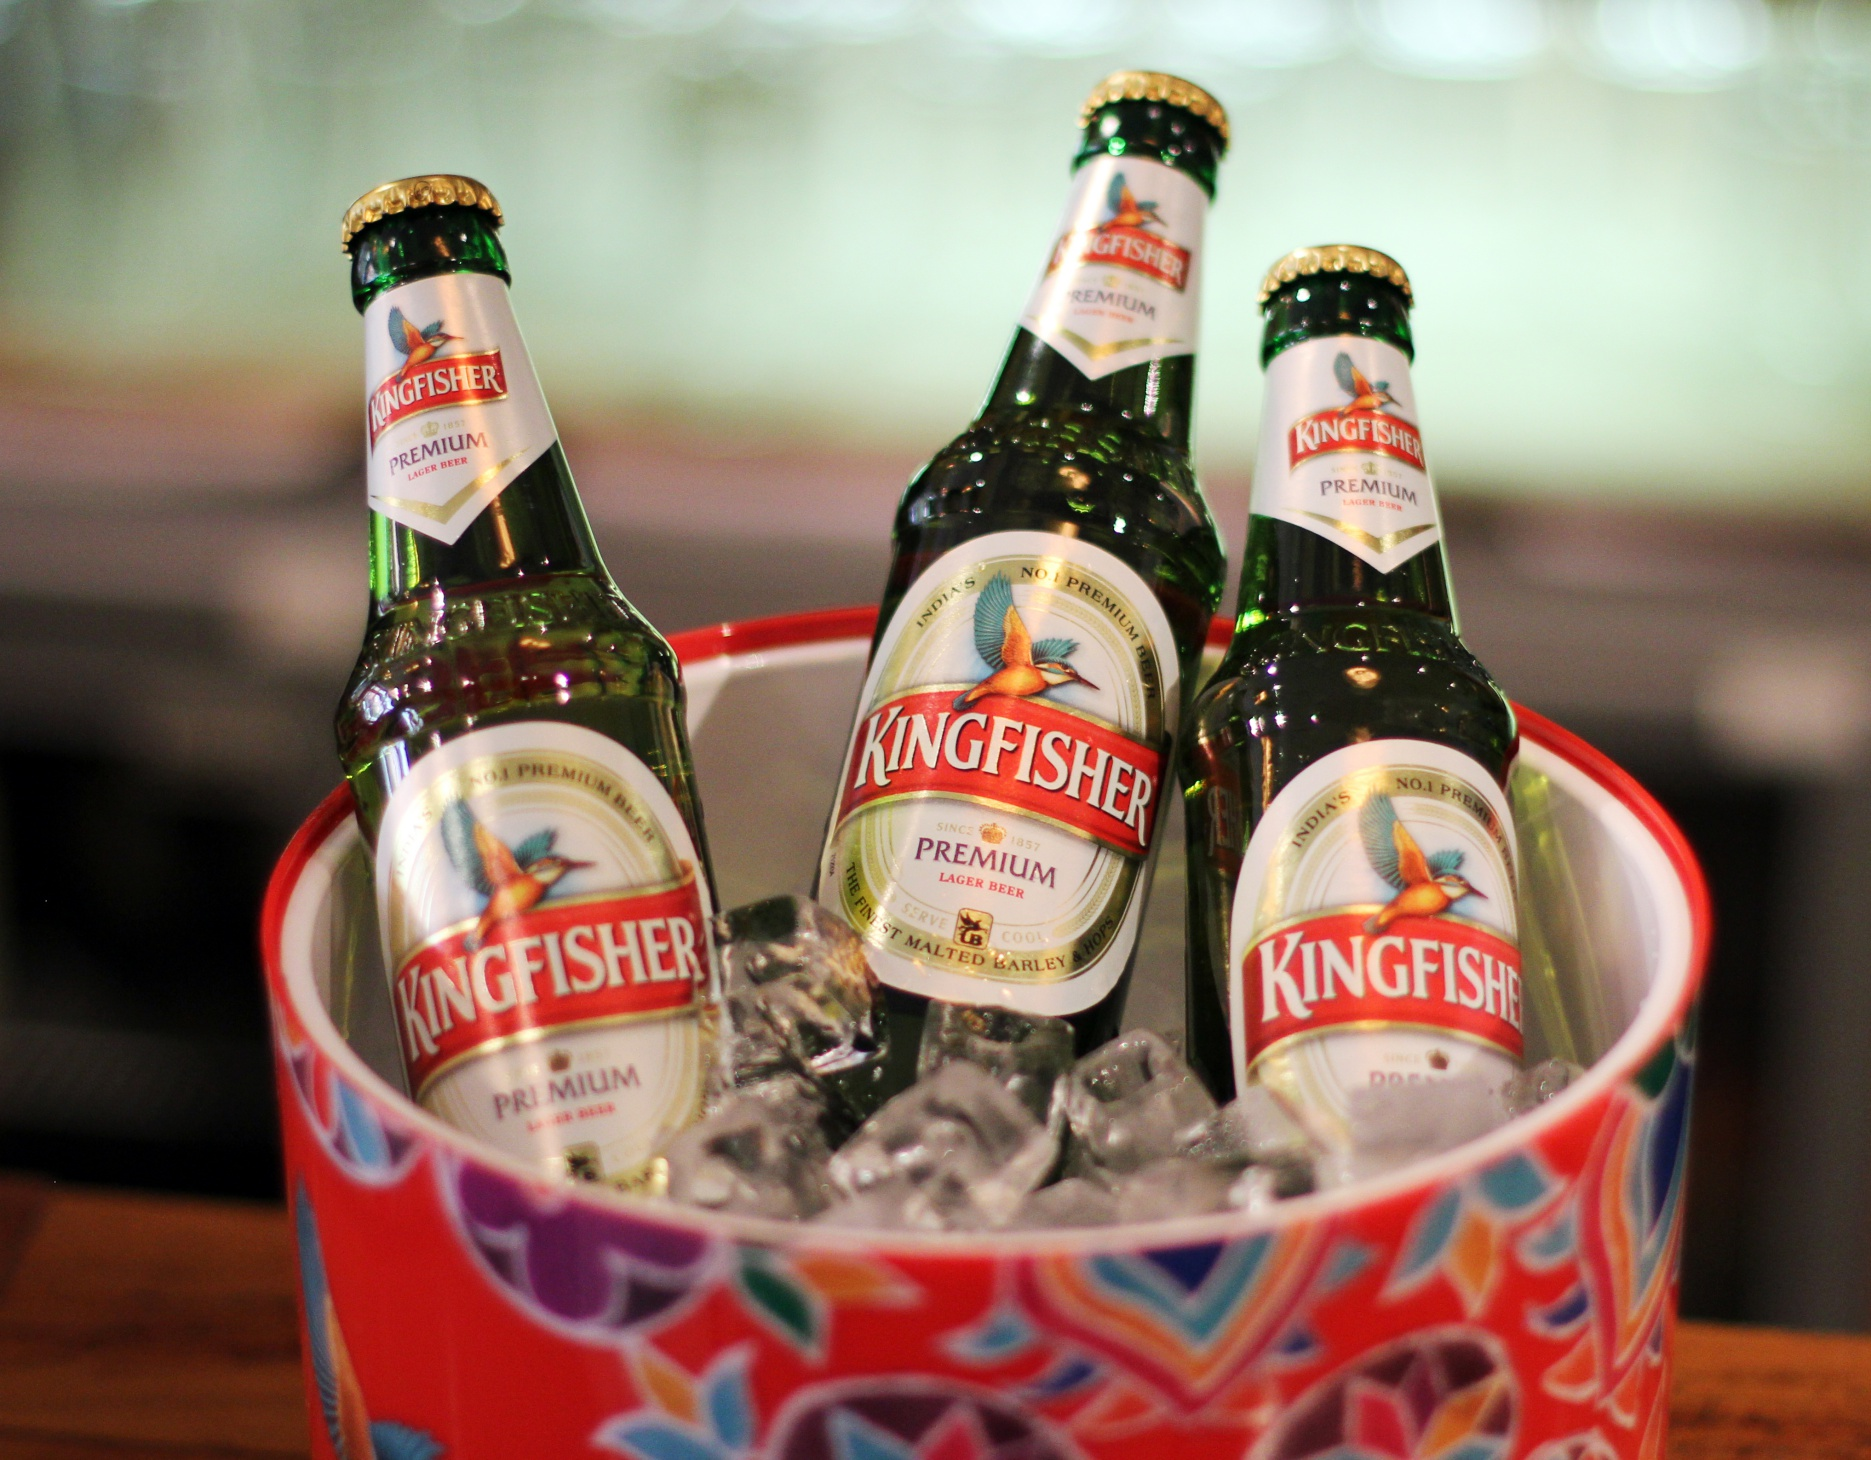 Indian beer, indian lager, kingfisher